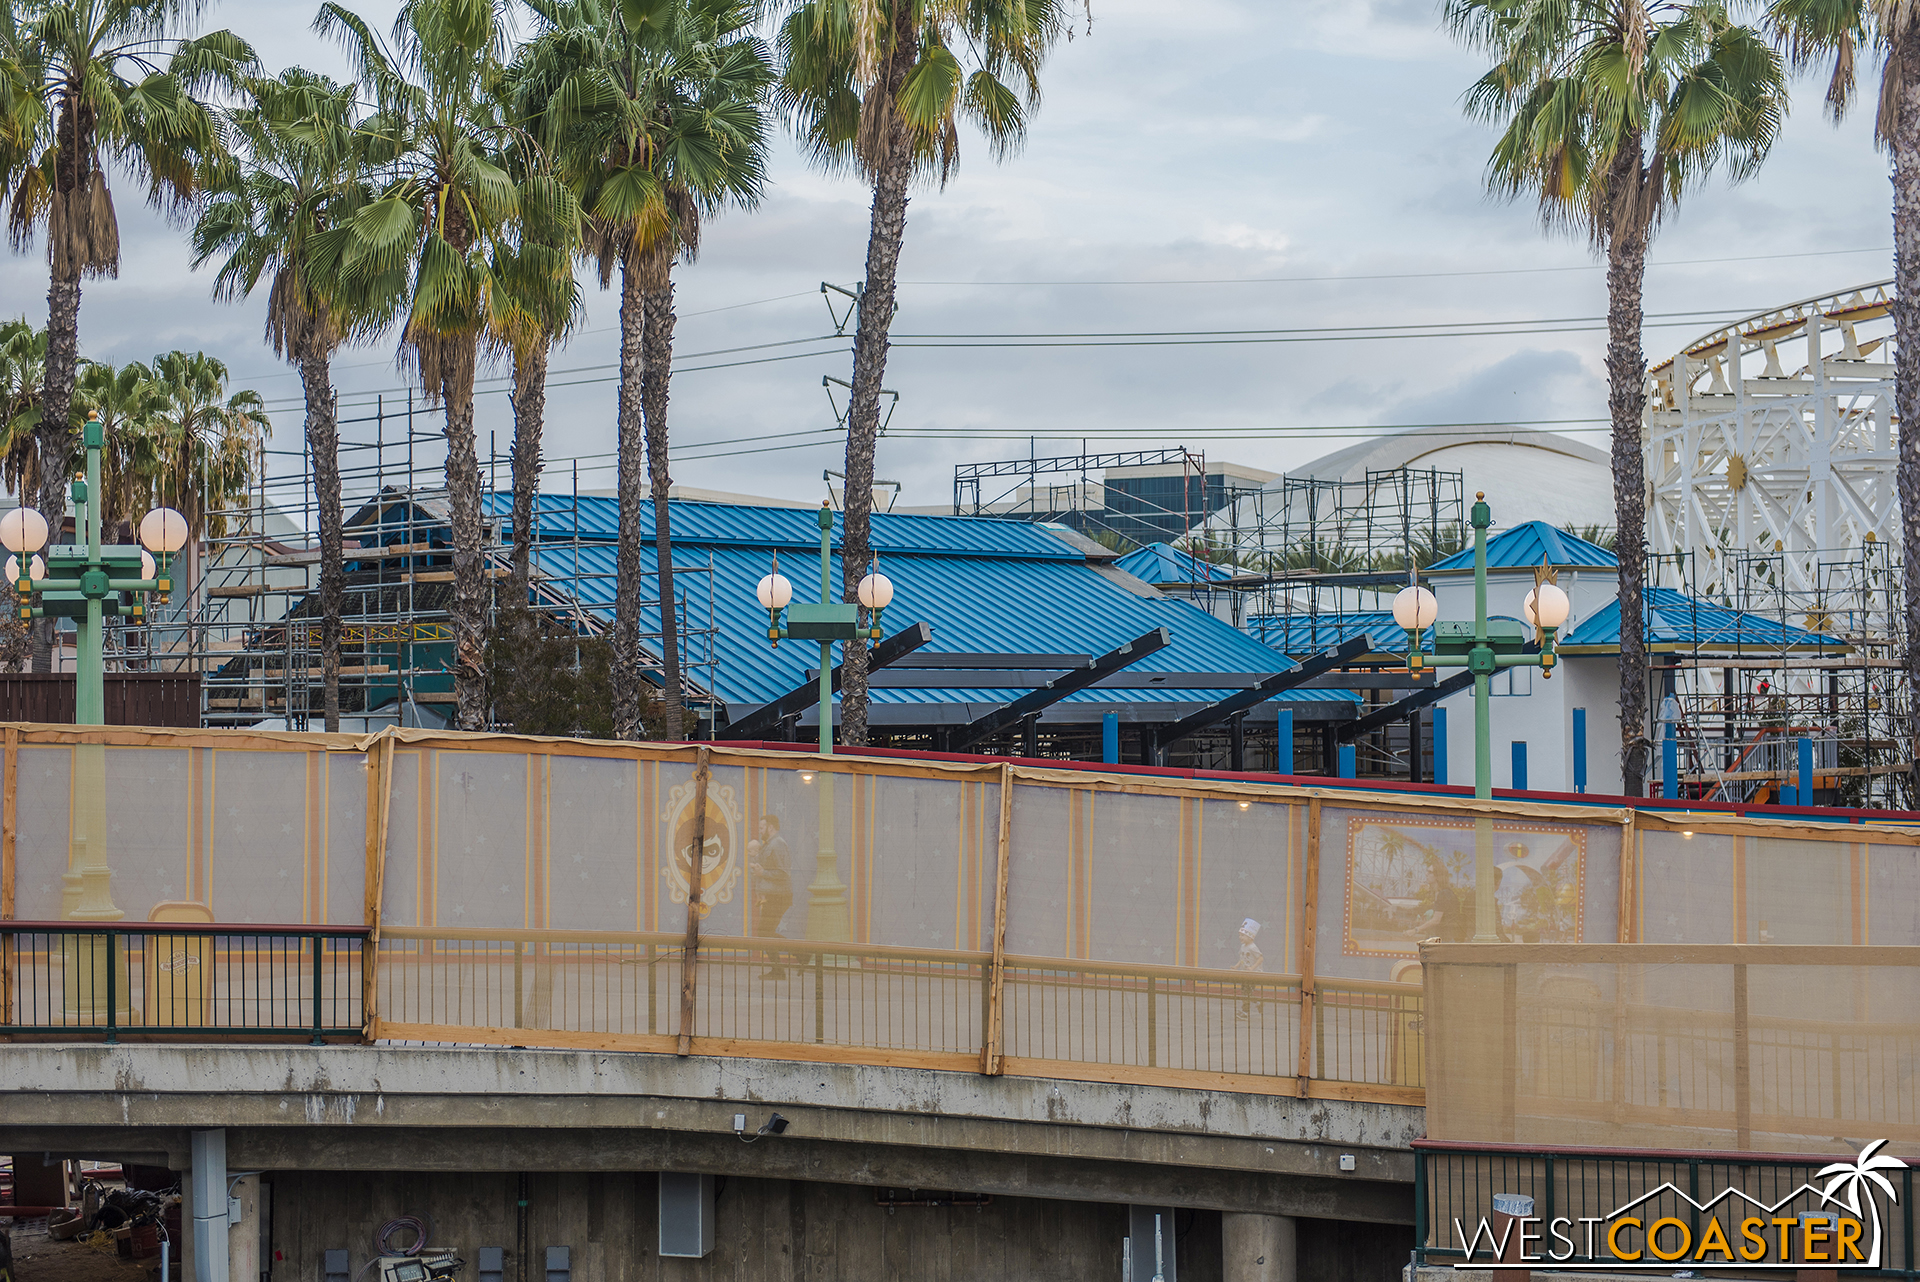 Here's more progress on the Incredicoaster station.